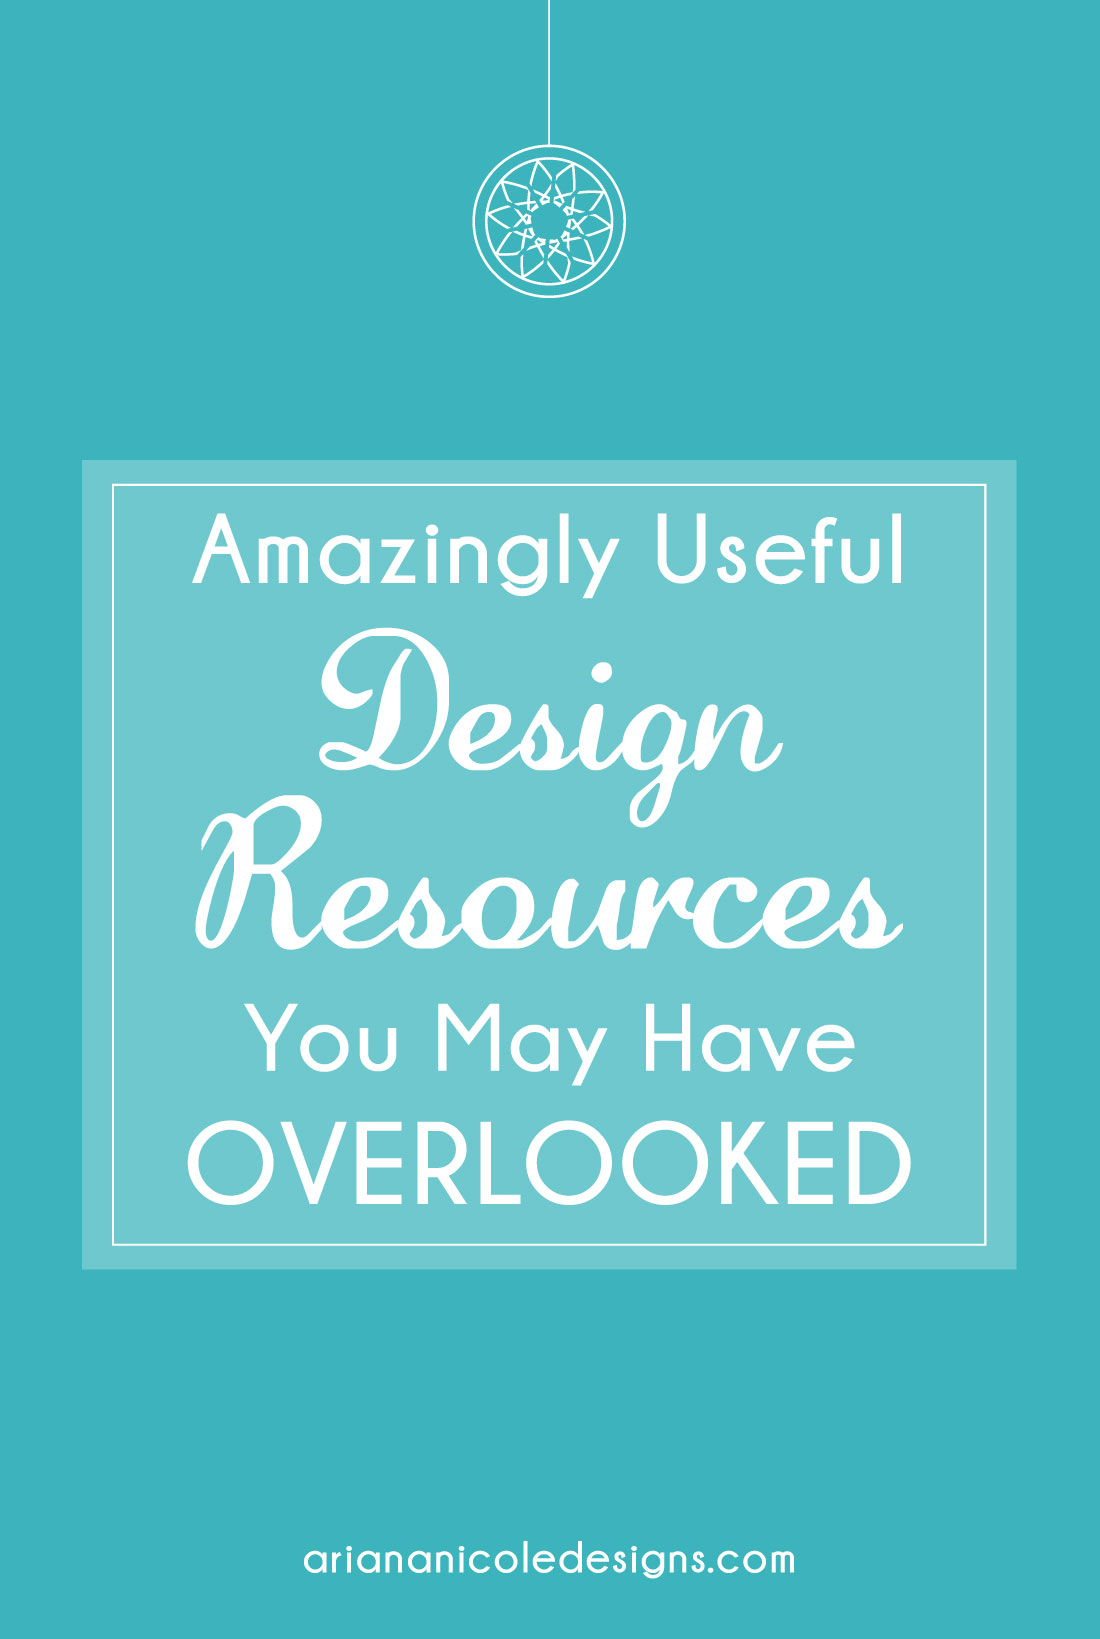 Amazingly_Useful_Design_Resources_You_May_Have_Overlooked-1100